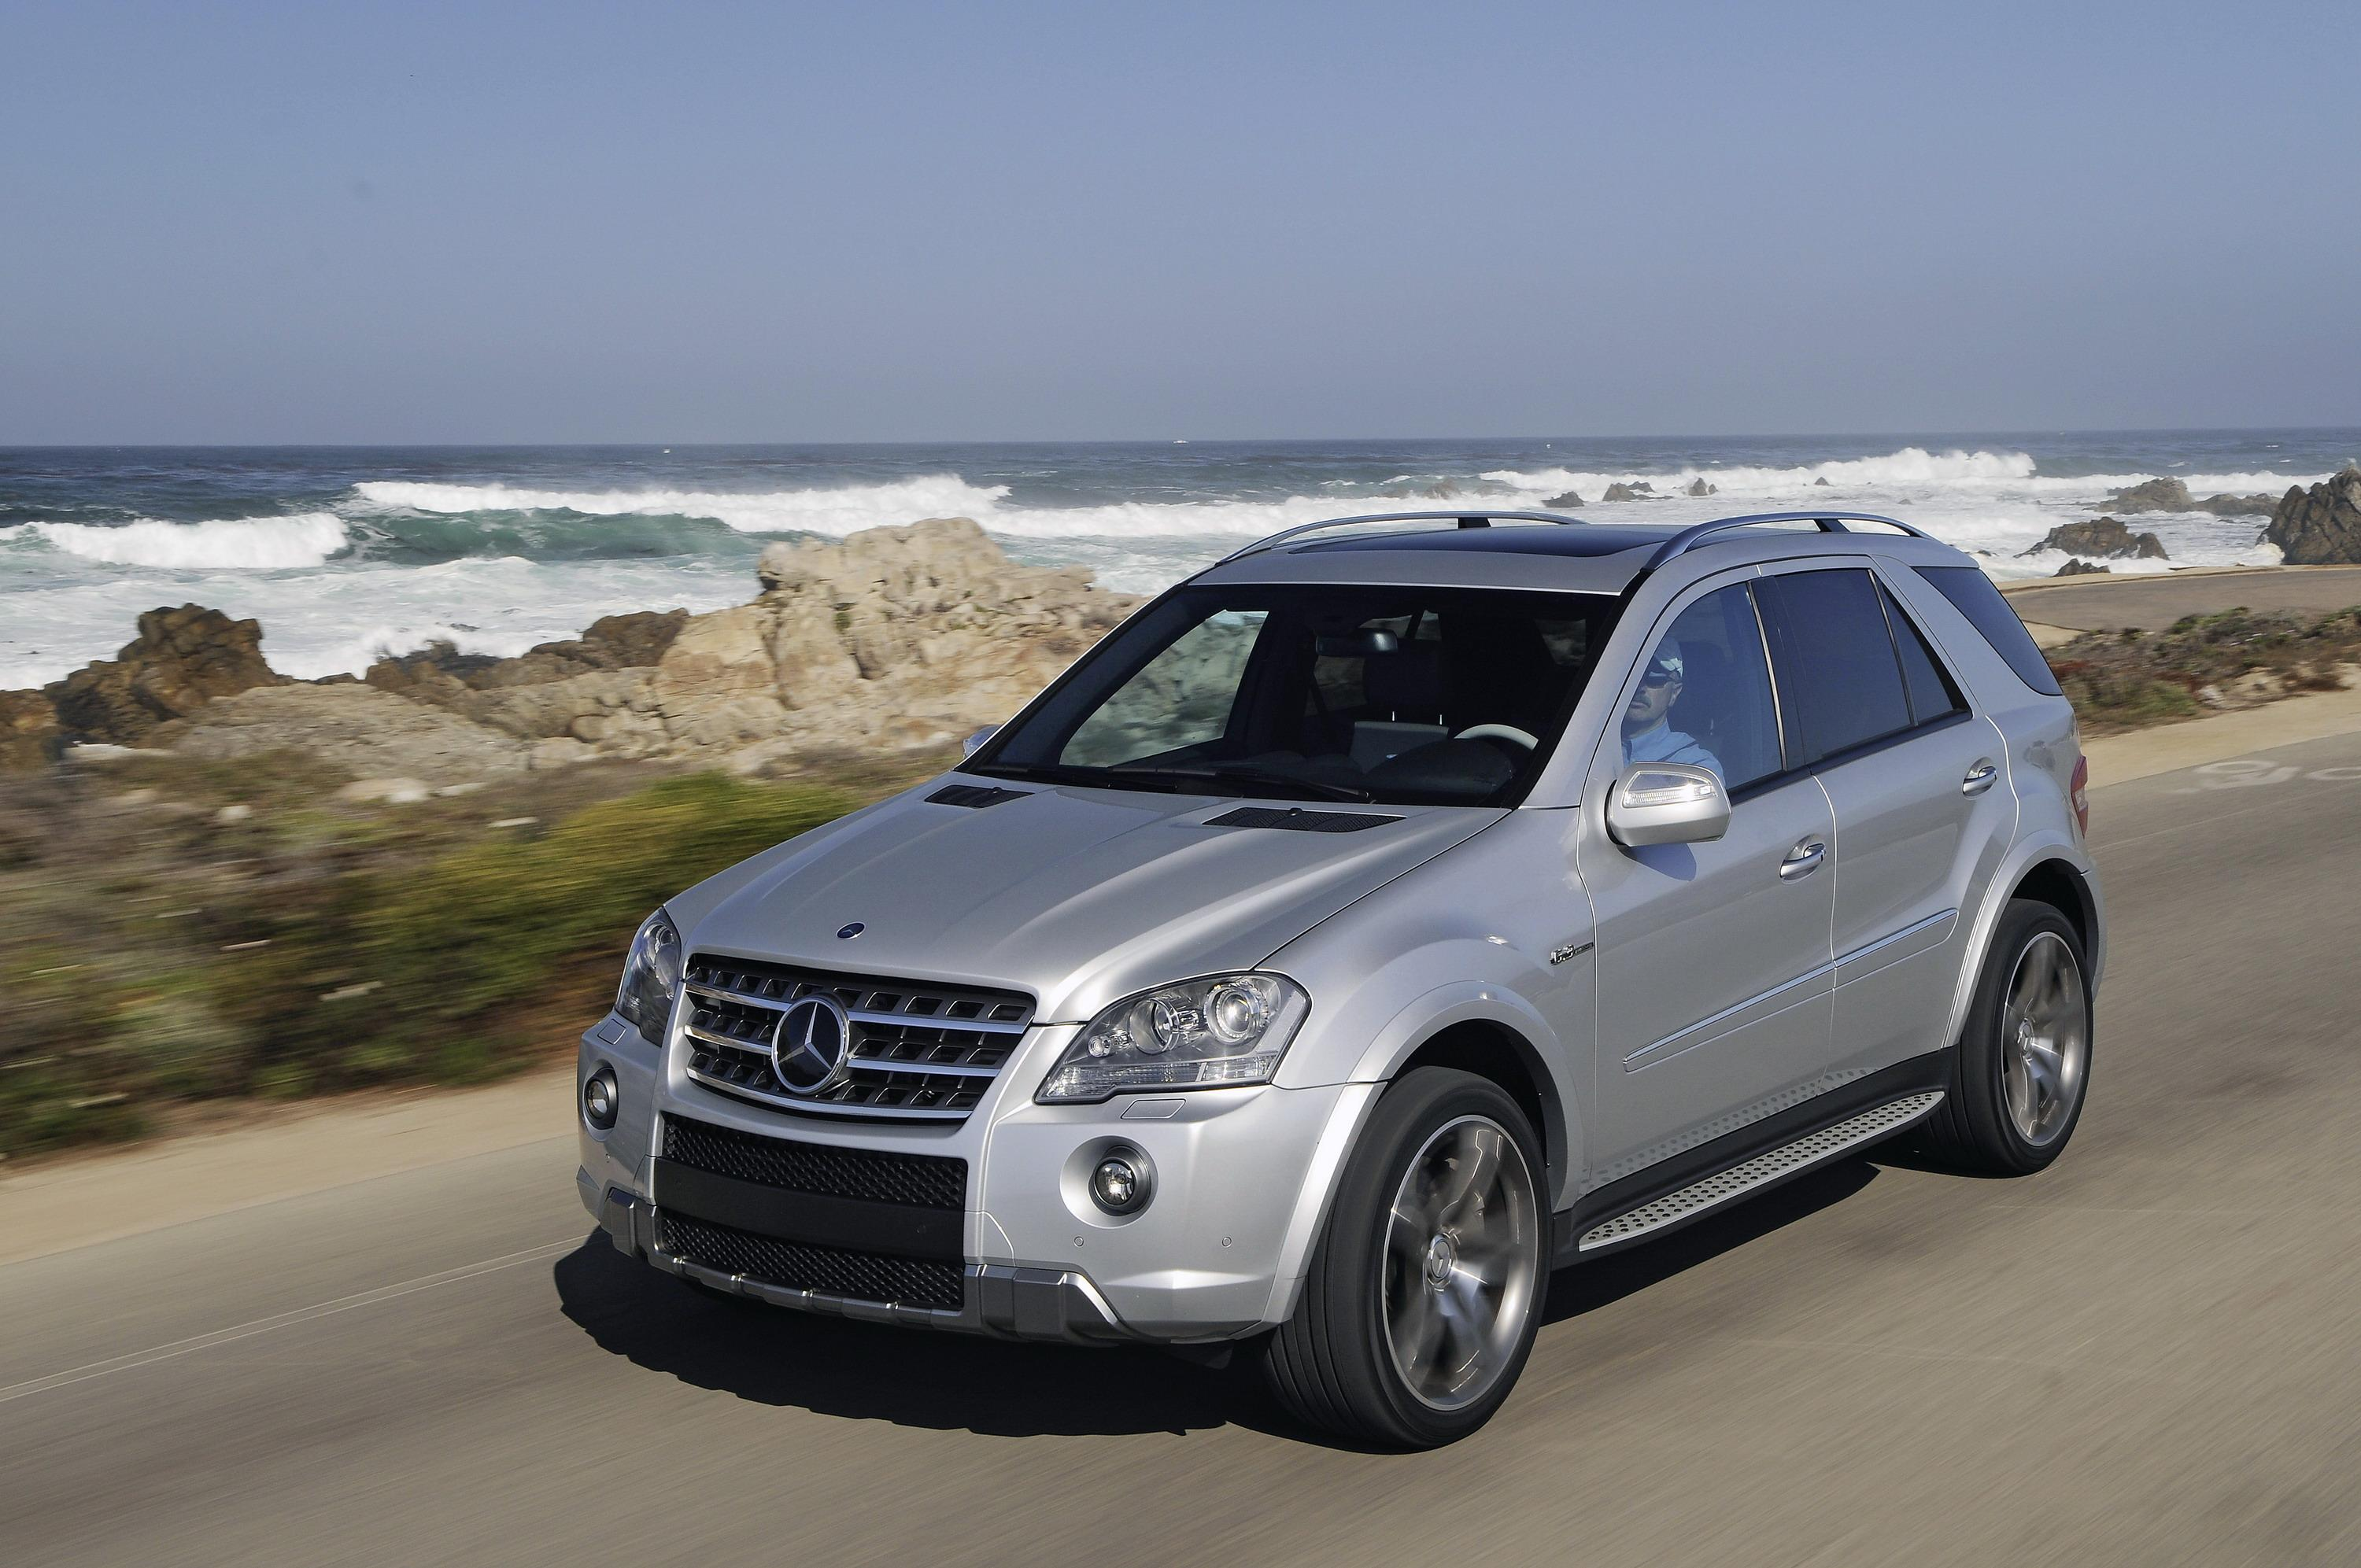 2009 mercedes ml 63 amg 10th anniversary review top speed. Black Bedroom Furniture Sets. Home Design Ideas